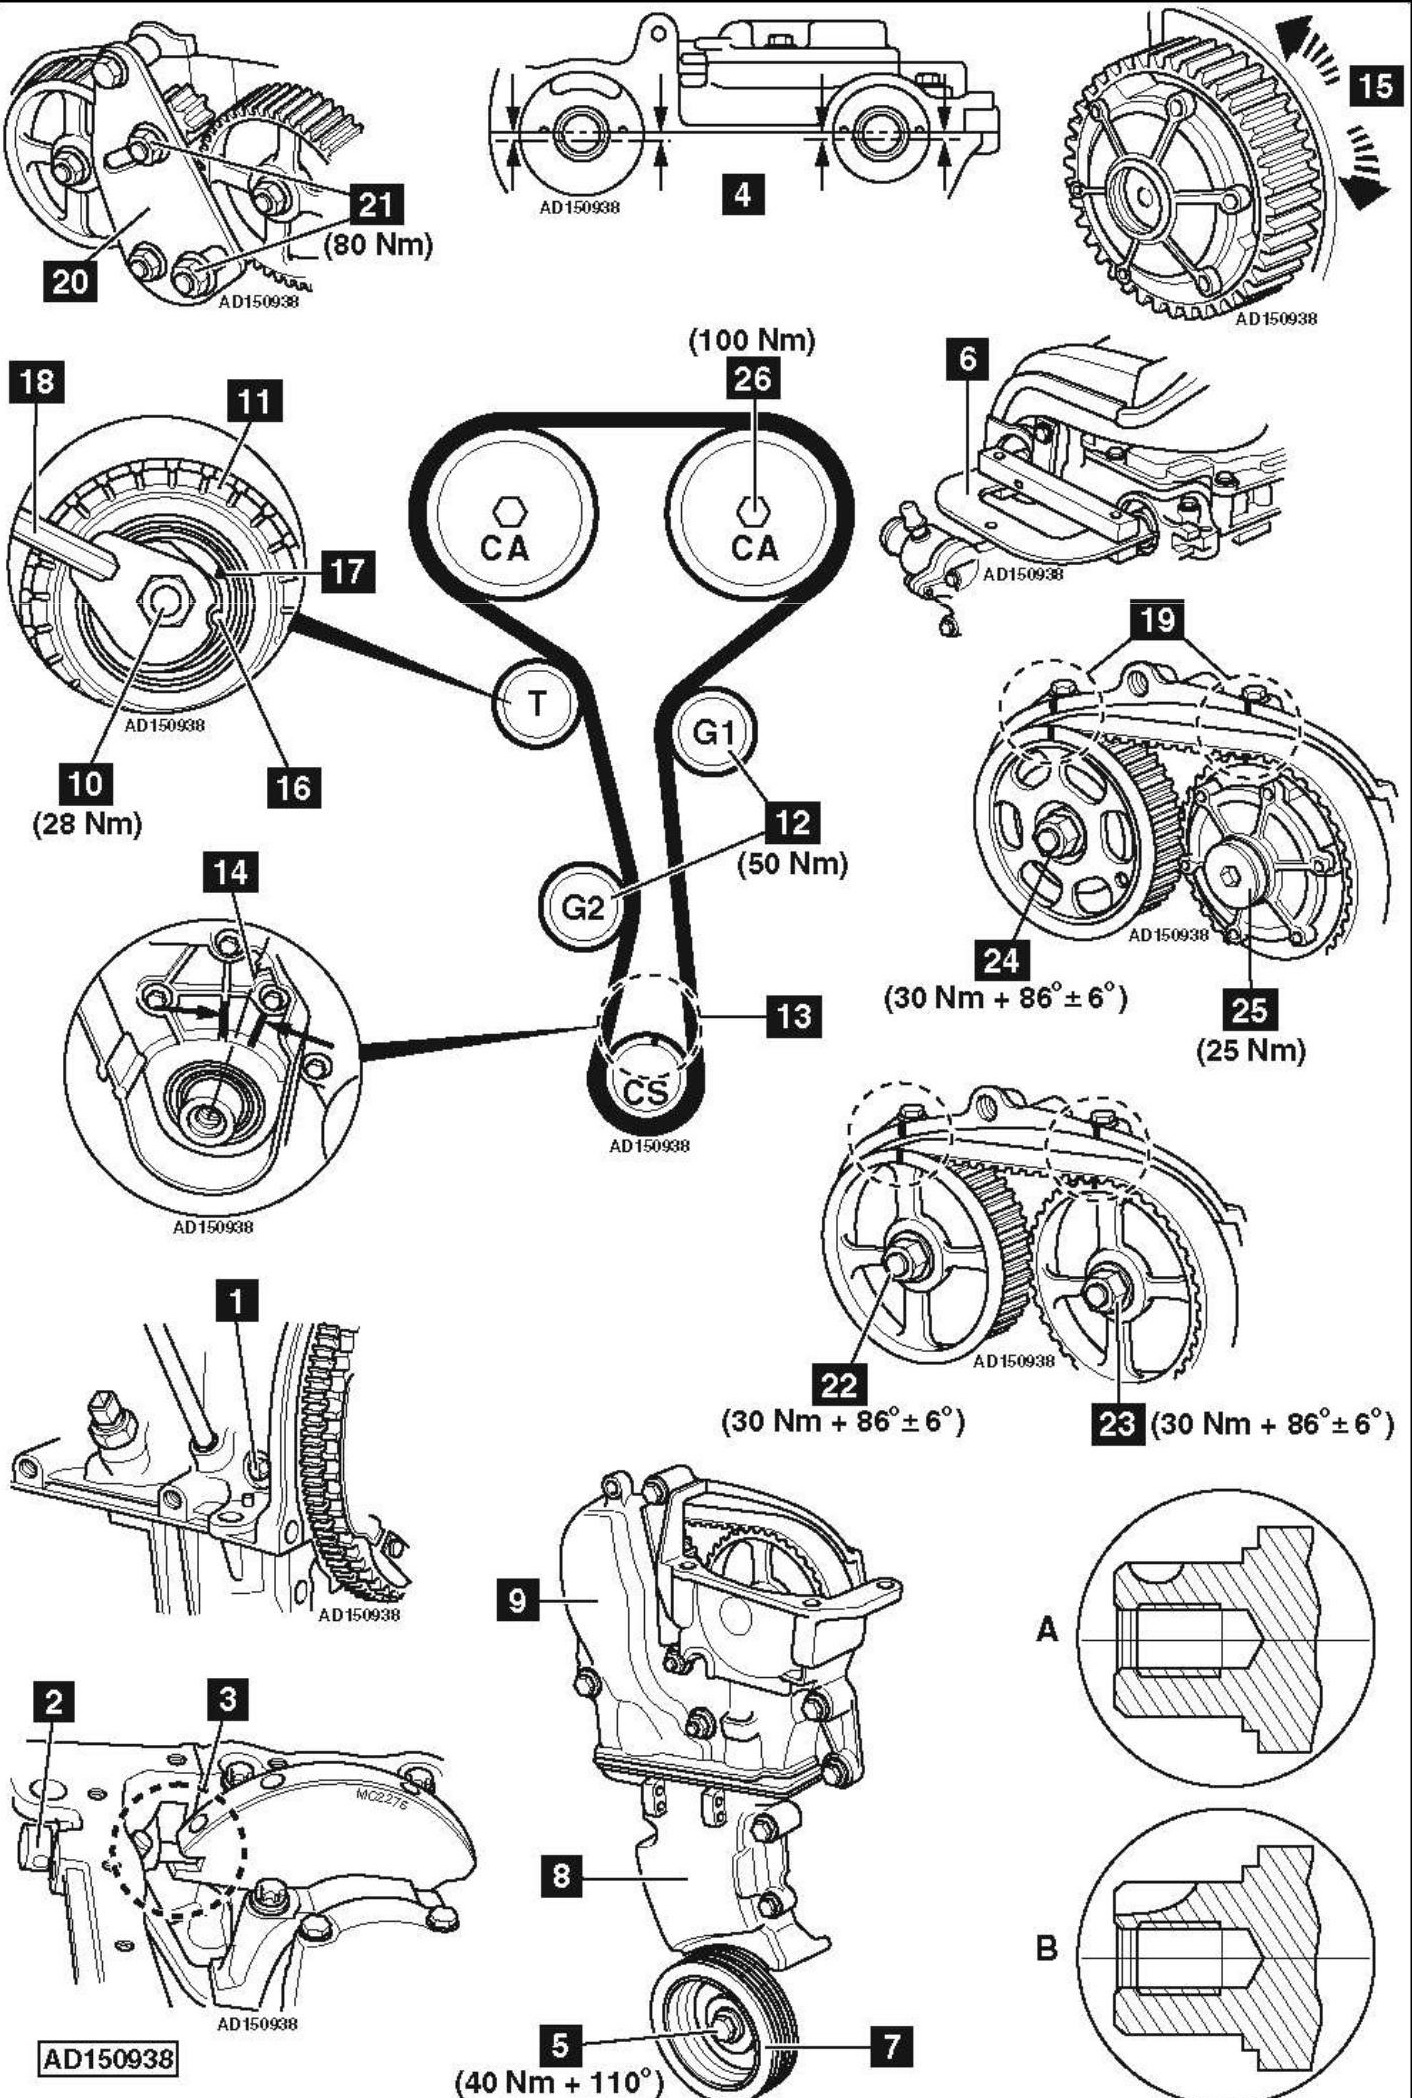 2001 honda civic engine diagram belts  honda  auto wiring